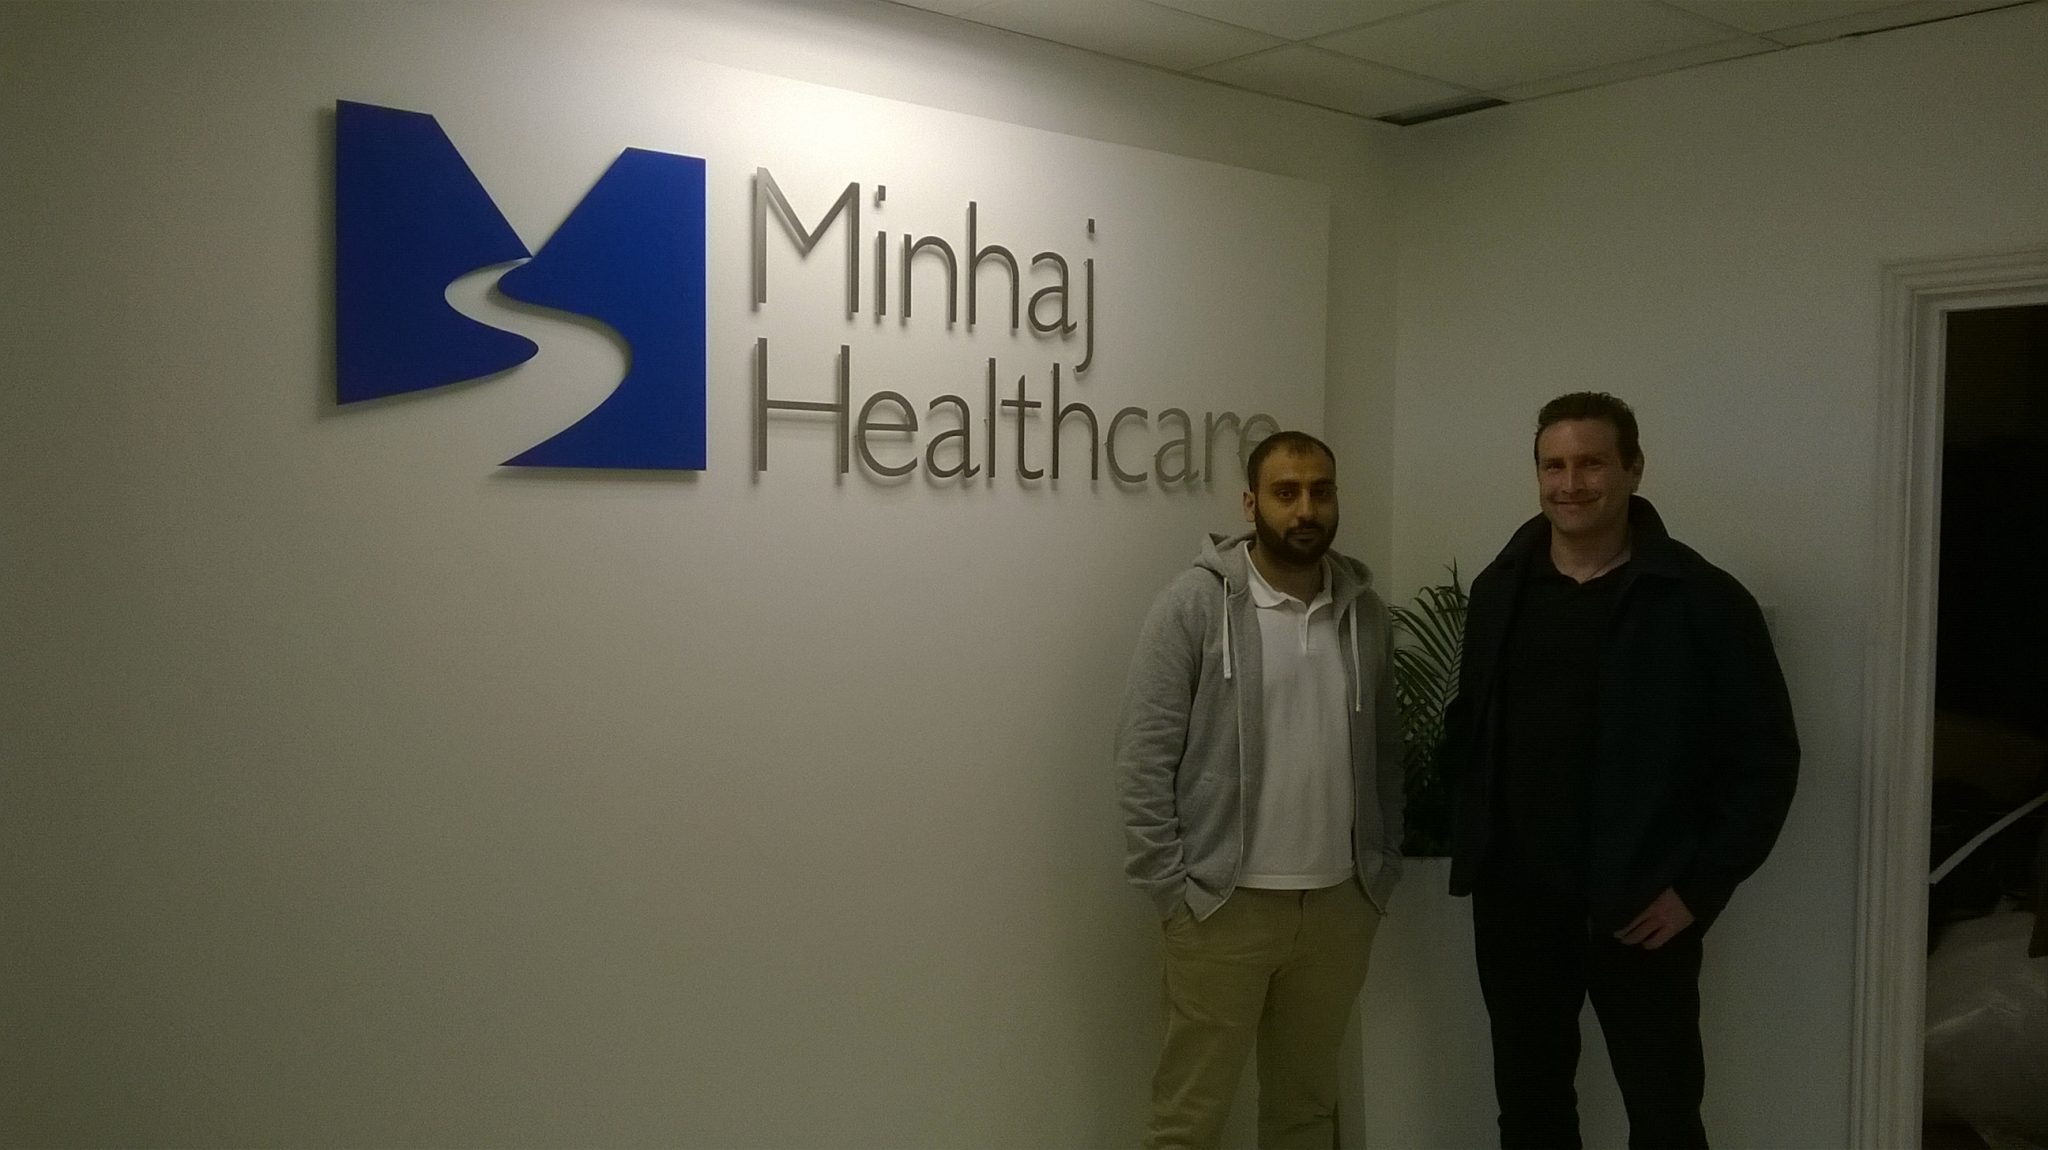 Perspex Signs and Powder coated aluminium signs made and installed for Minhaj healthcare Fayyaz by Lewis Critchley Installer of www.e-signs.co.uk